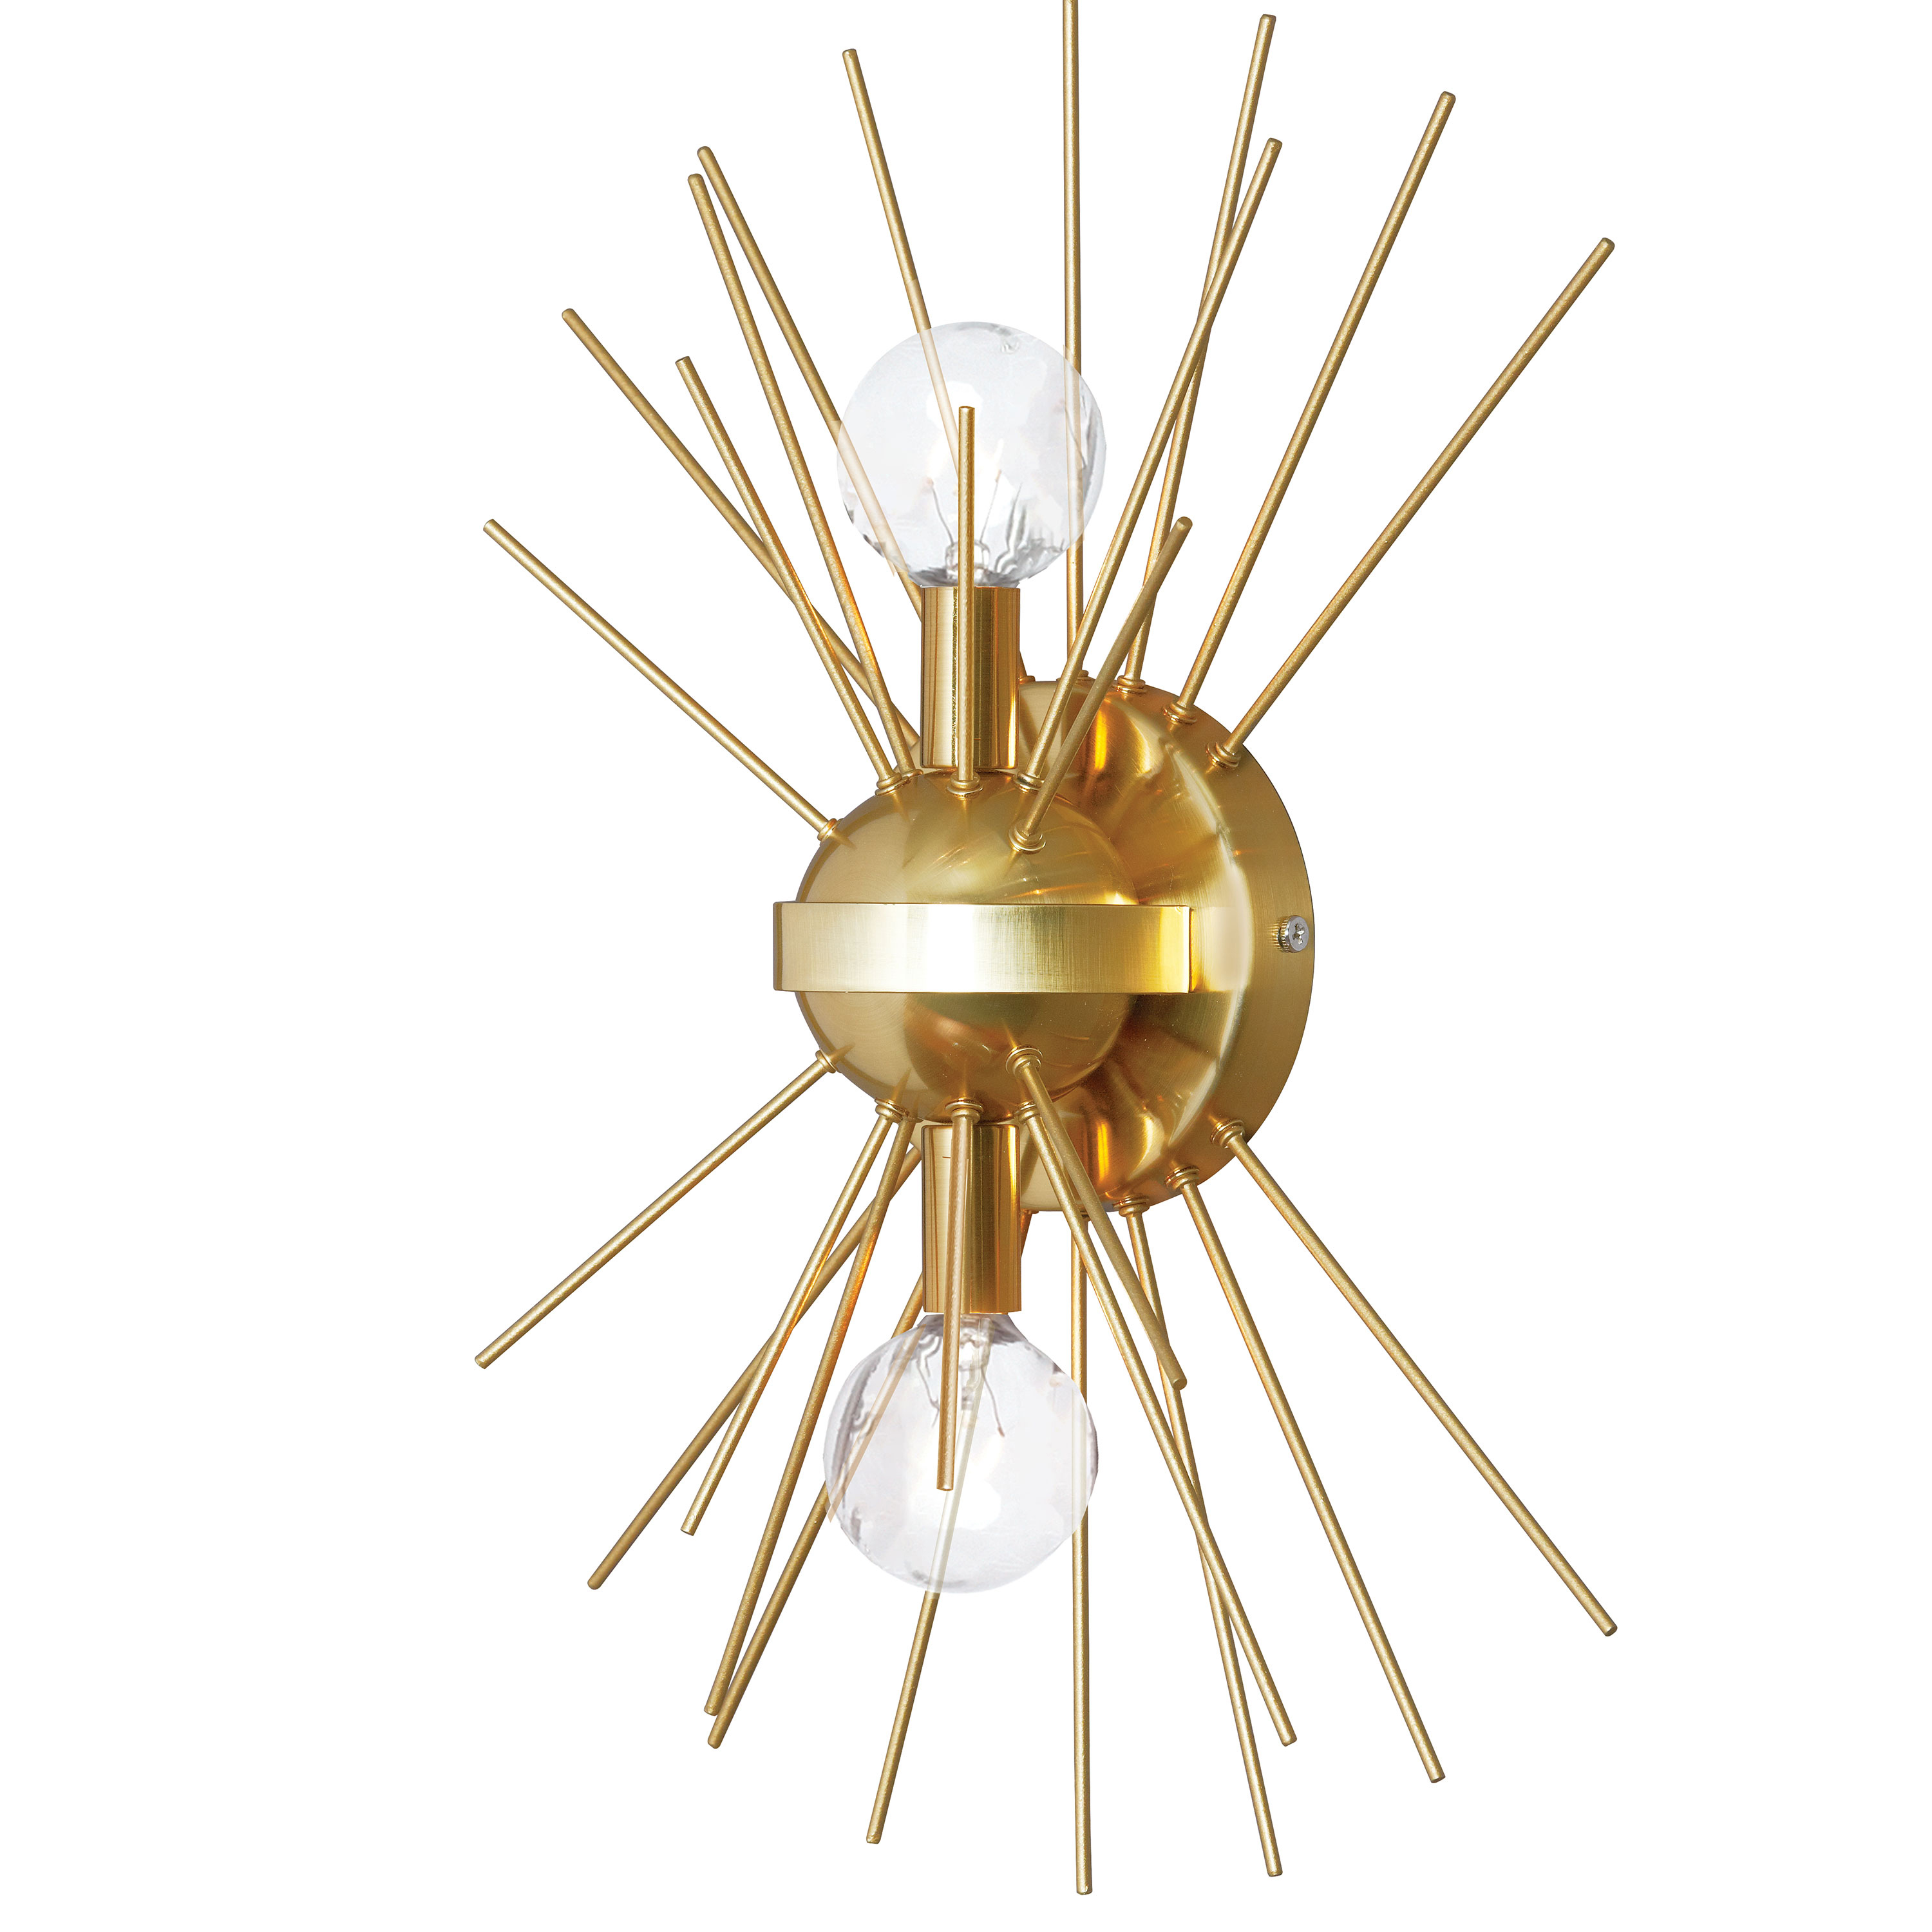 Vega sconce finished in gold with sputnik-like spikes from Dainolite